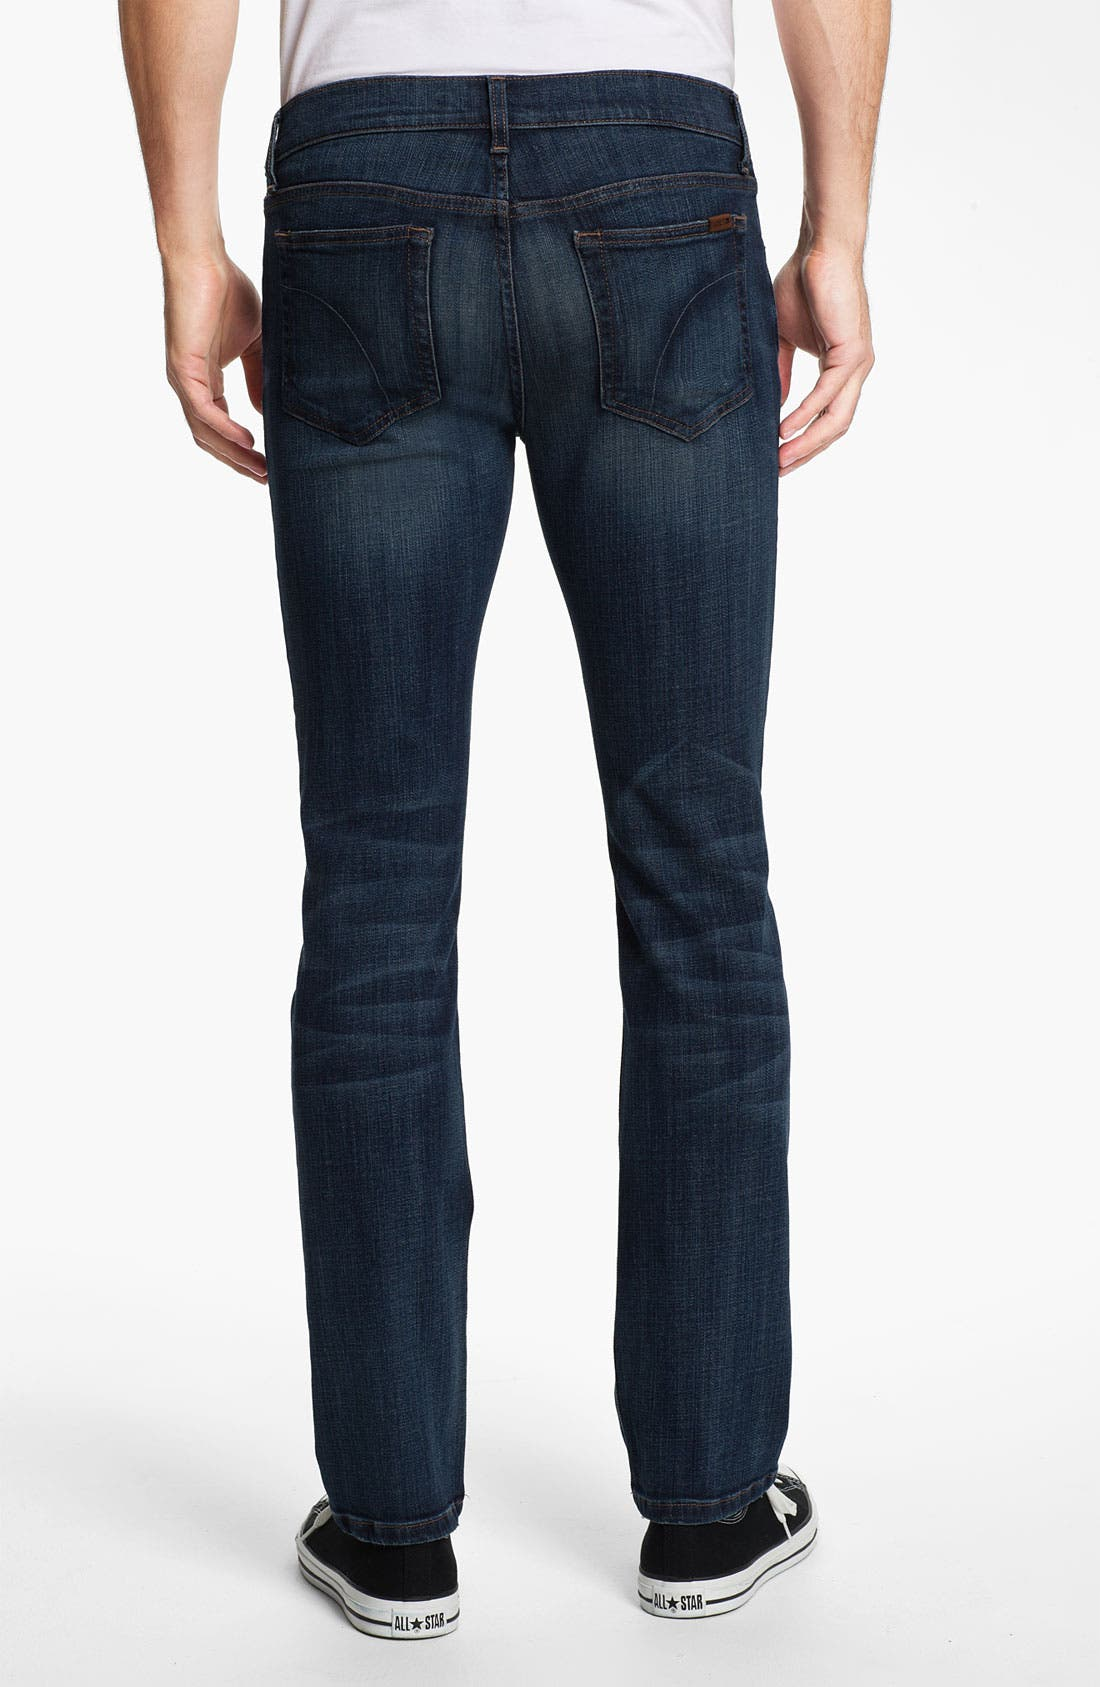 Alternate Image 1 Selected - Joe's 'Brixton' Slim Fit Jeans (Johnny)